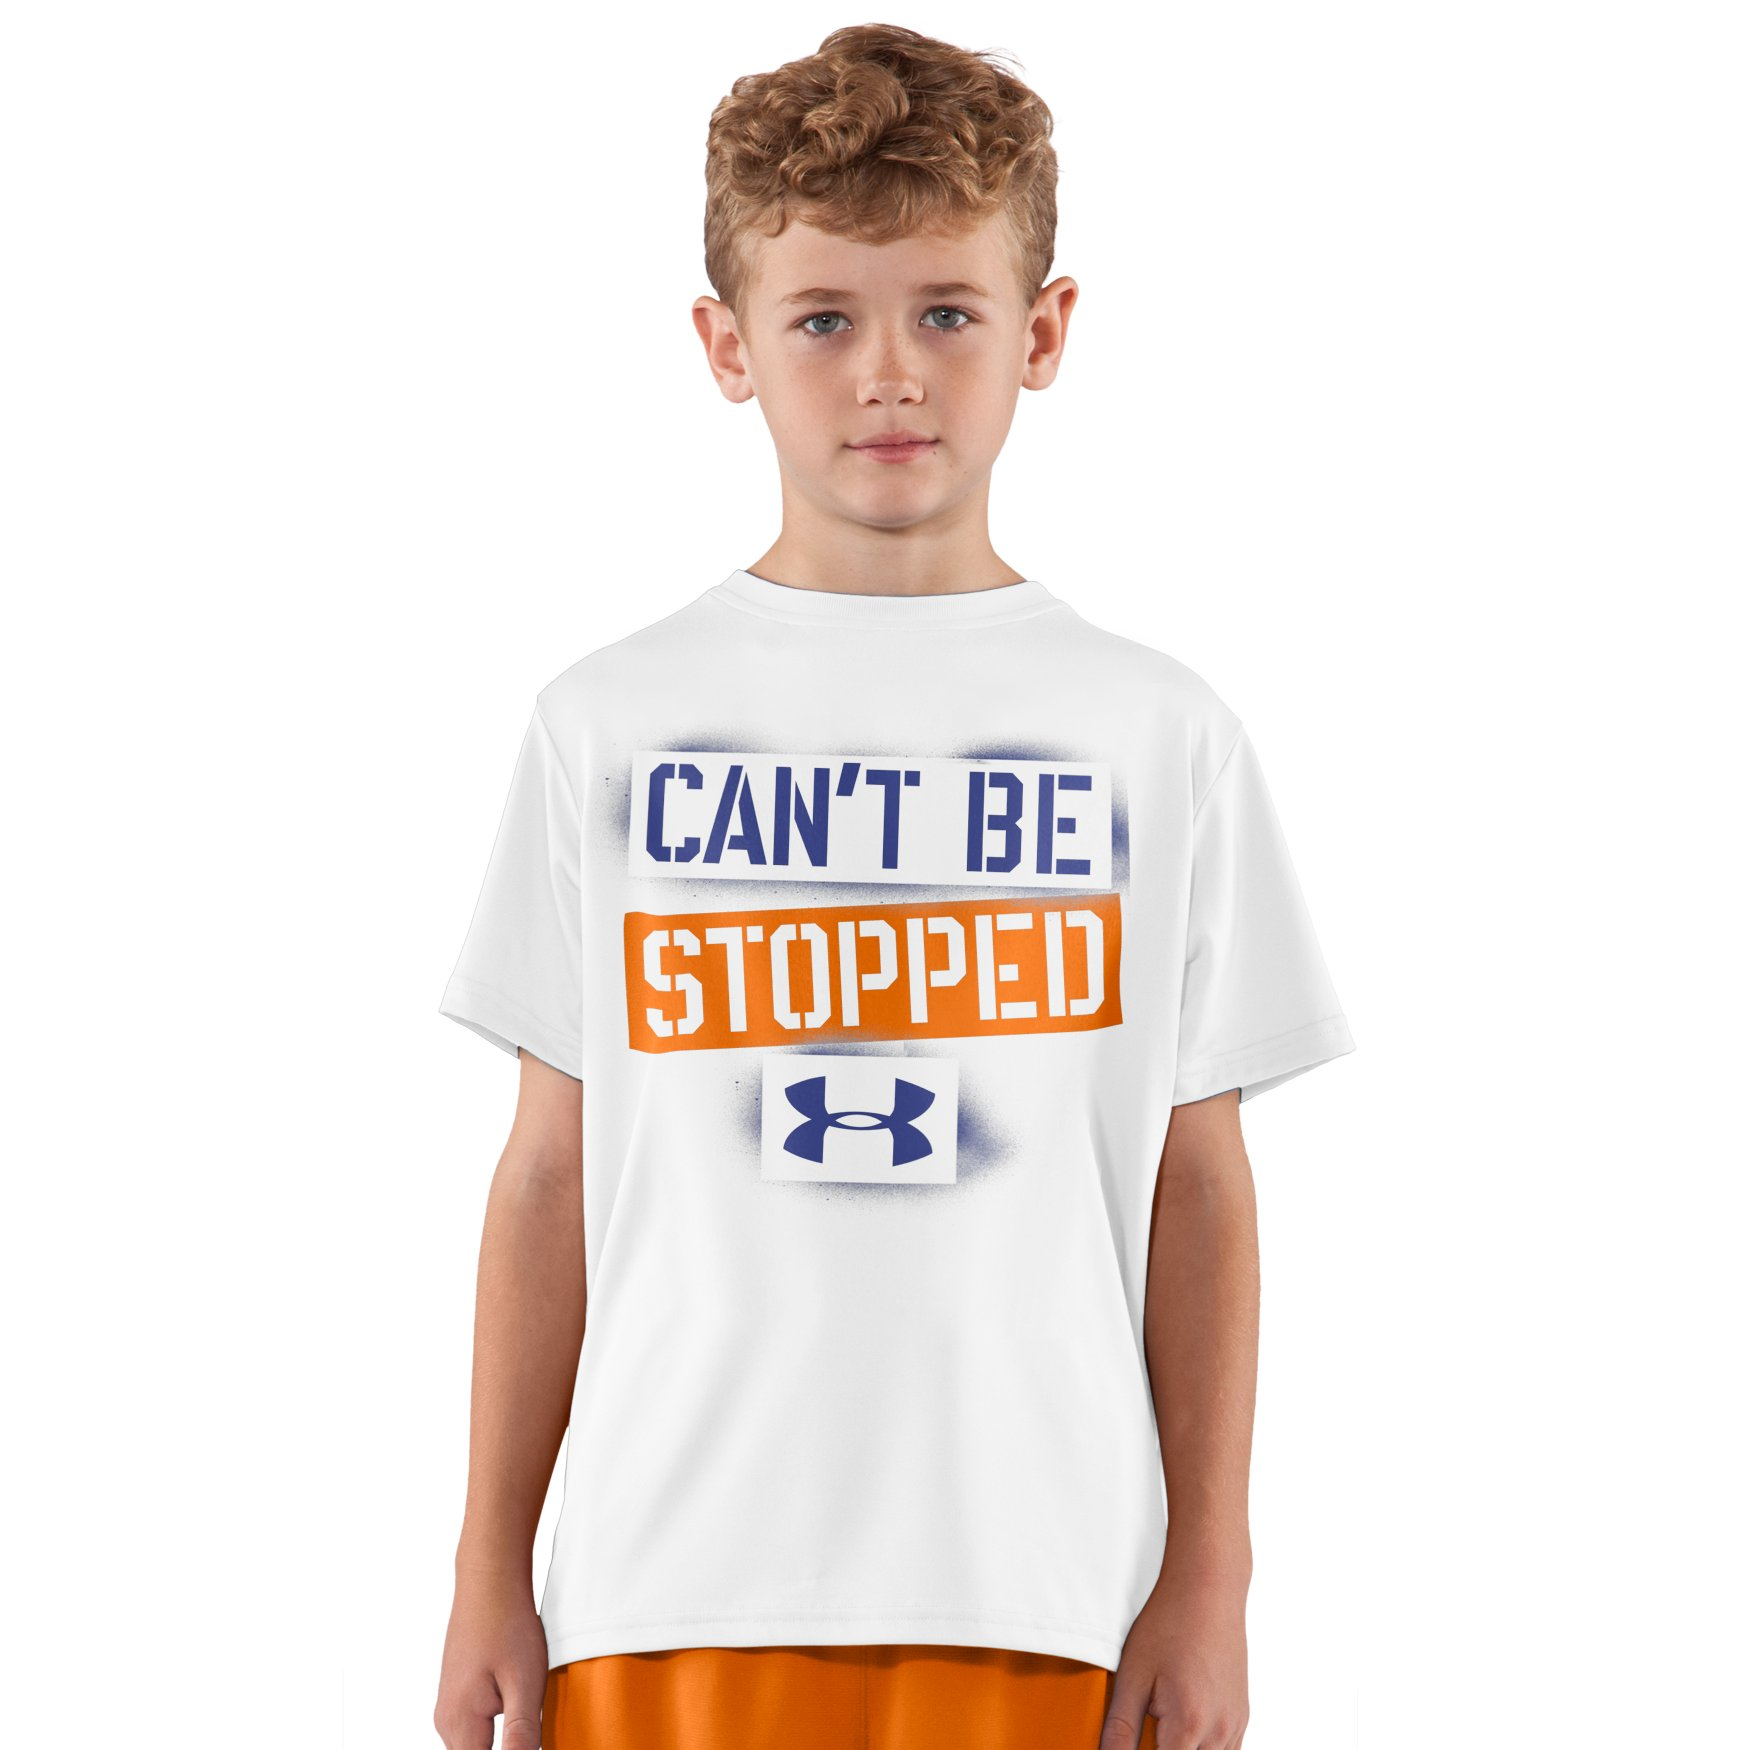 Under Armour Boys' UA Can't Be Stopped Graphic T-Shirt